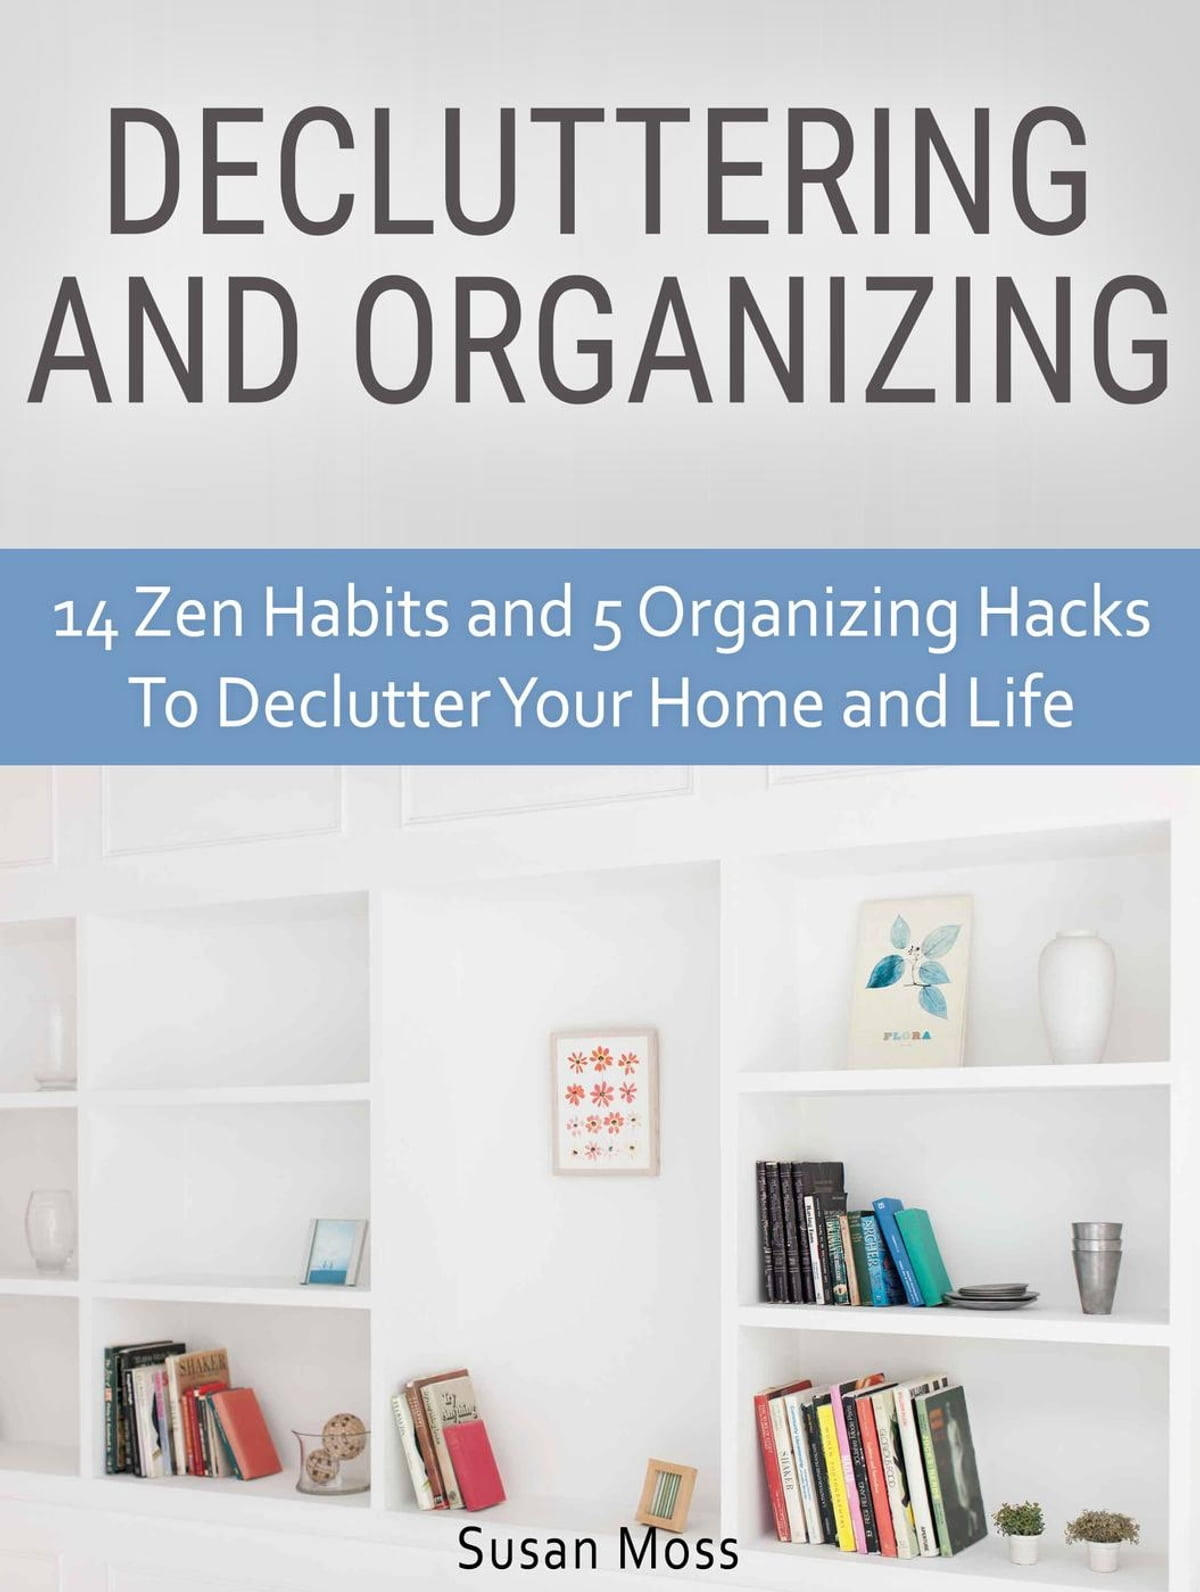 Decluttering and Organizing: 14 Zen Habits and 5 Organizing Hacks To  Declutter Your Home and Life eBook by Susan Moss - 9781540162434 | Rakuten  Kobo